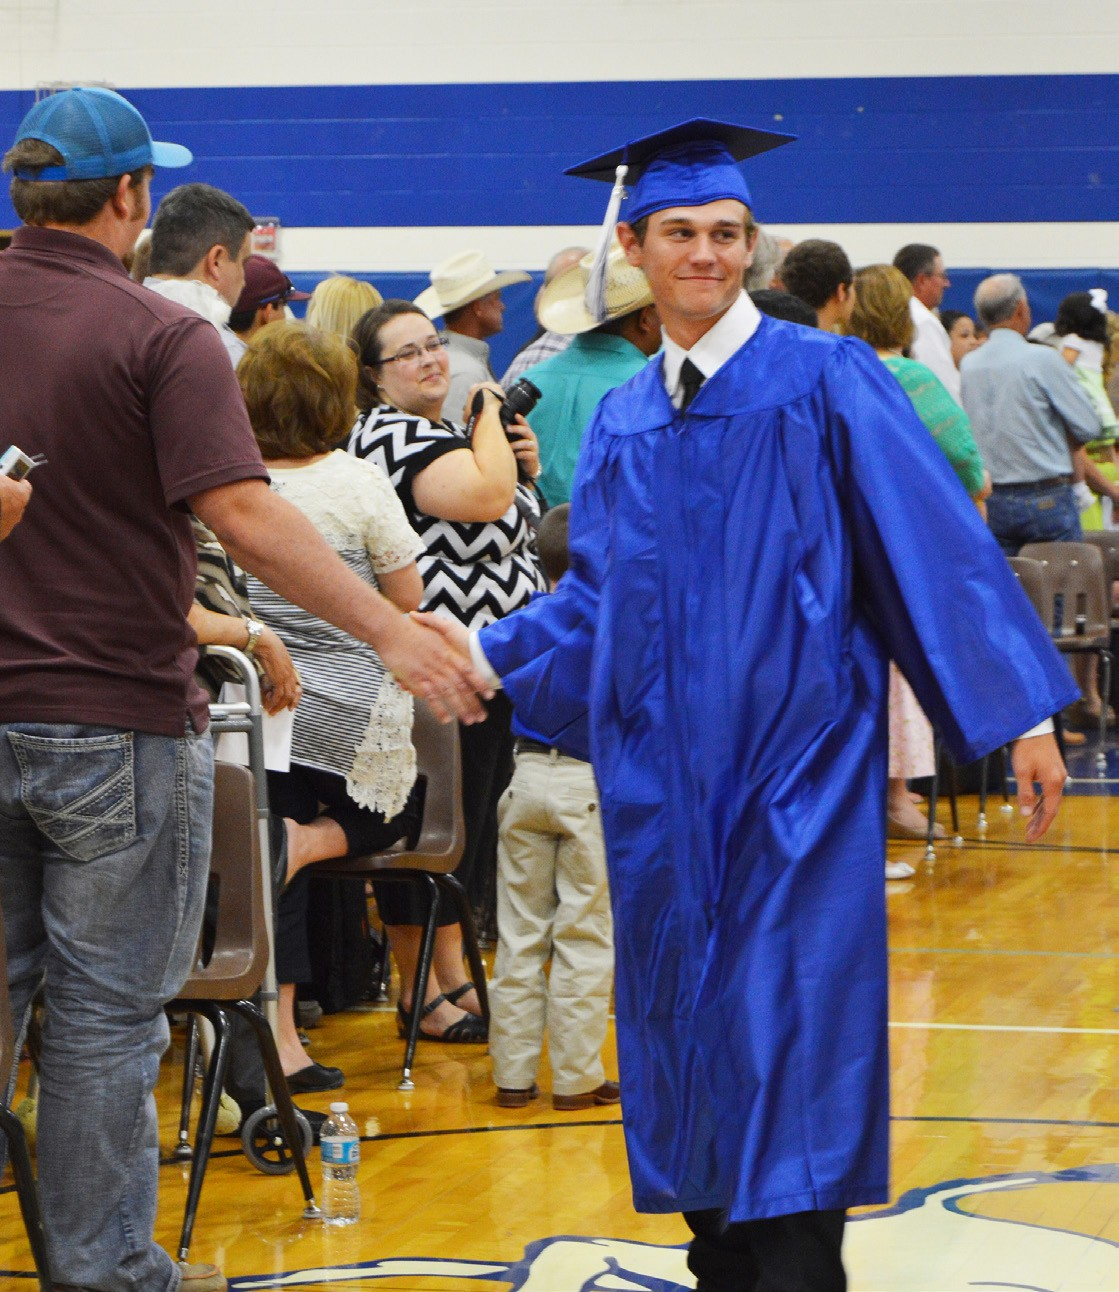 Tucker Smith, 2016 McMullen senior, gets a congratulatory hand slap from a friend in the audience during the commencement processional last Saturday evening.